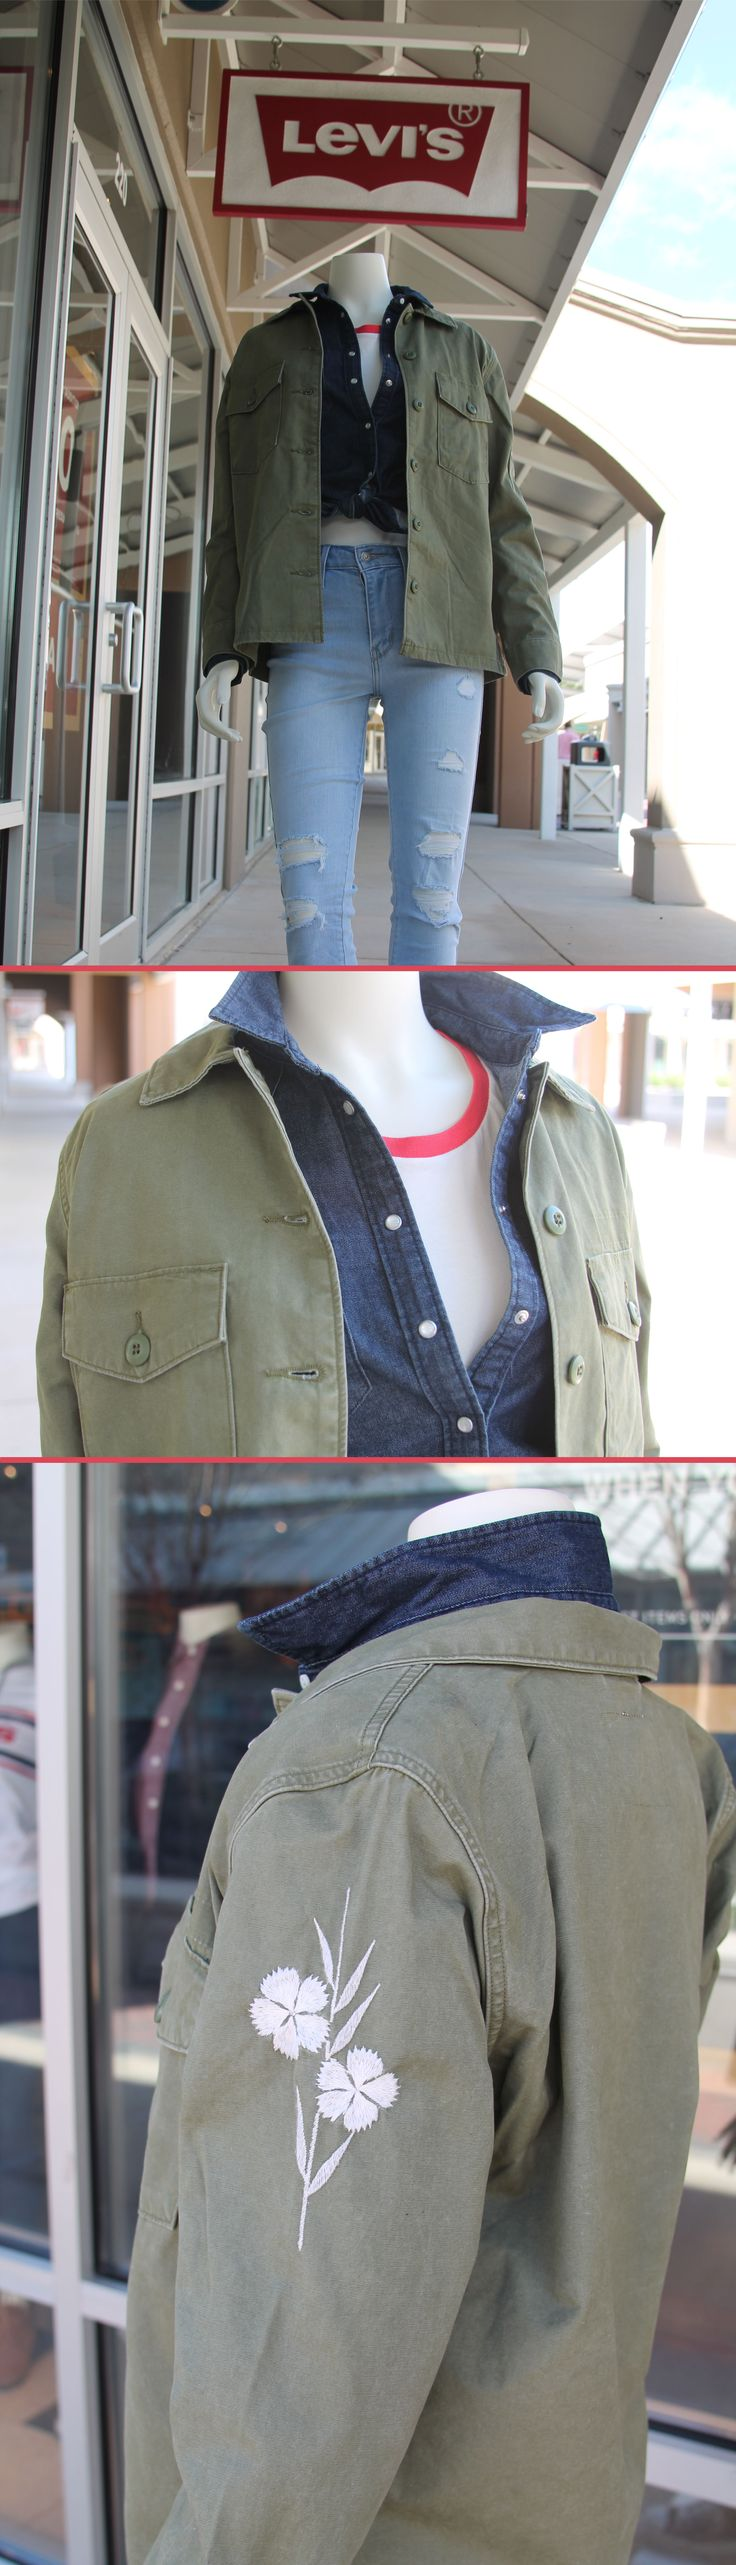 Mix your denim hues this Spring!  Get this look at Levi's Outlet Store at the Outlets of Mississippi in Pearl, MS!